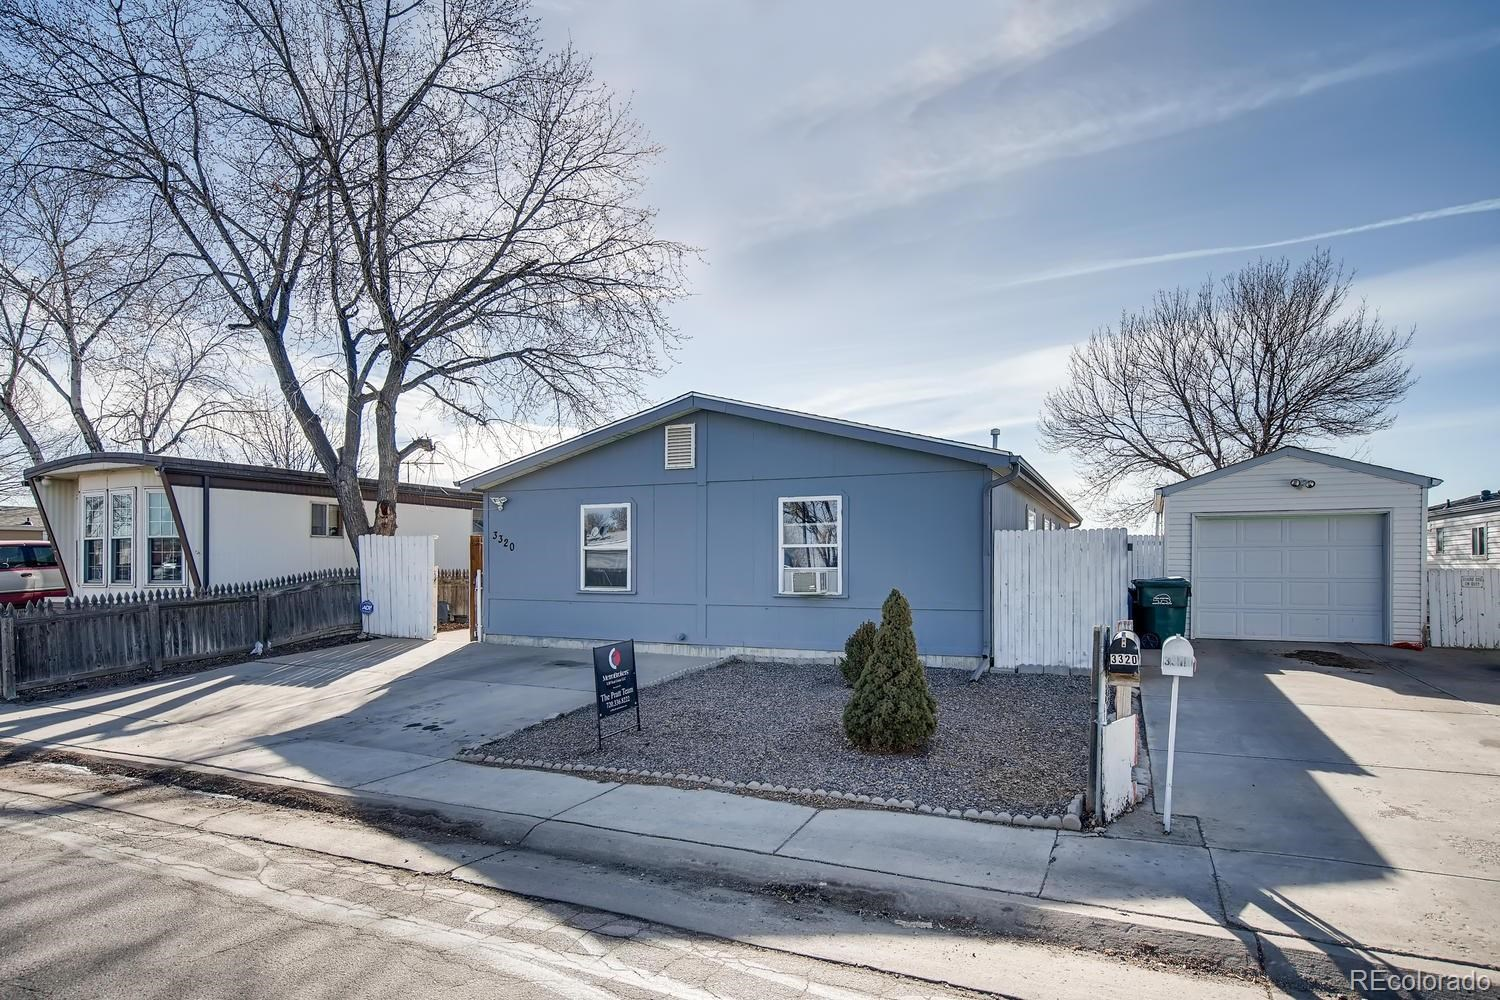 MLS# 9117398 - 2 - 3320 E 84th Drive, Denver, CO 80229